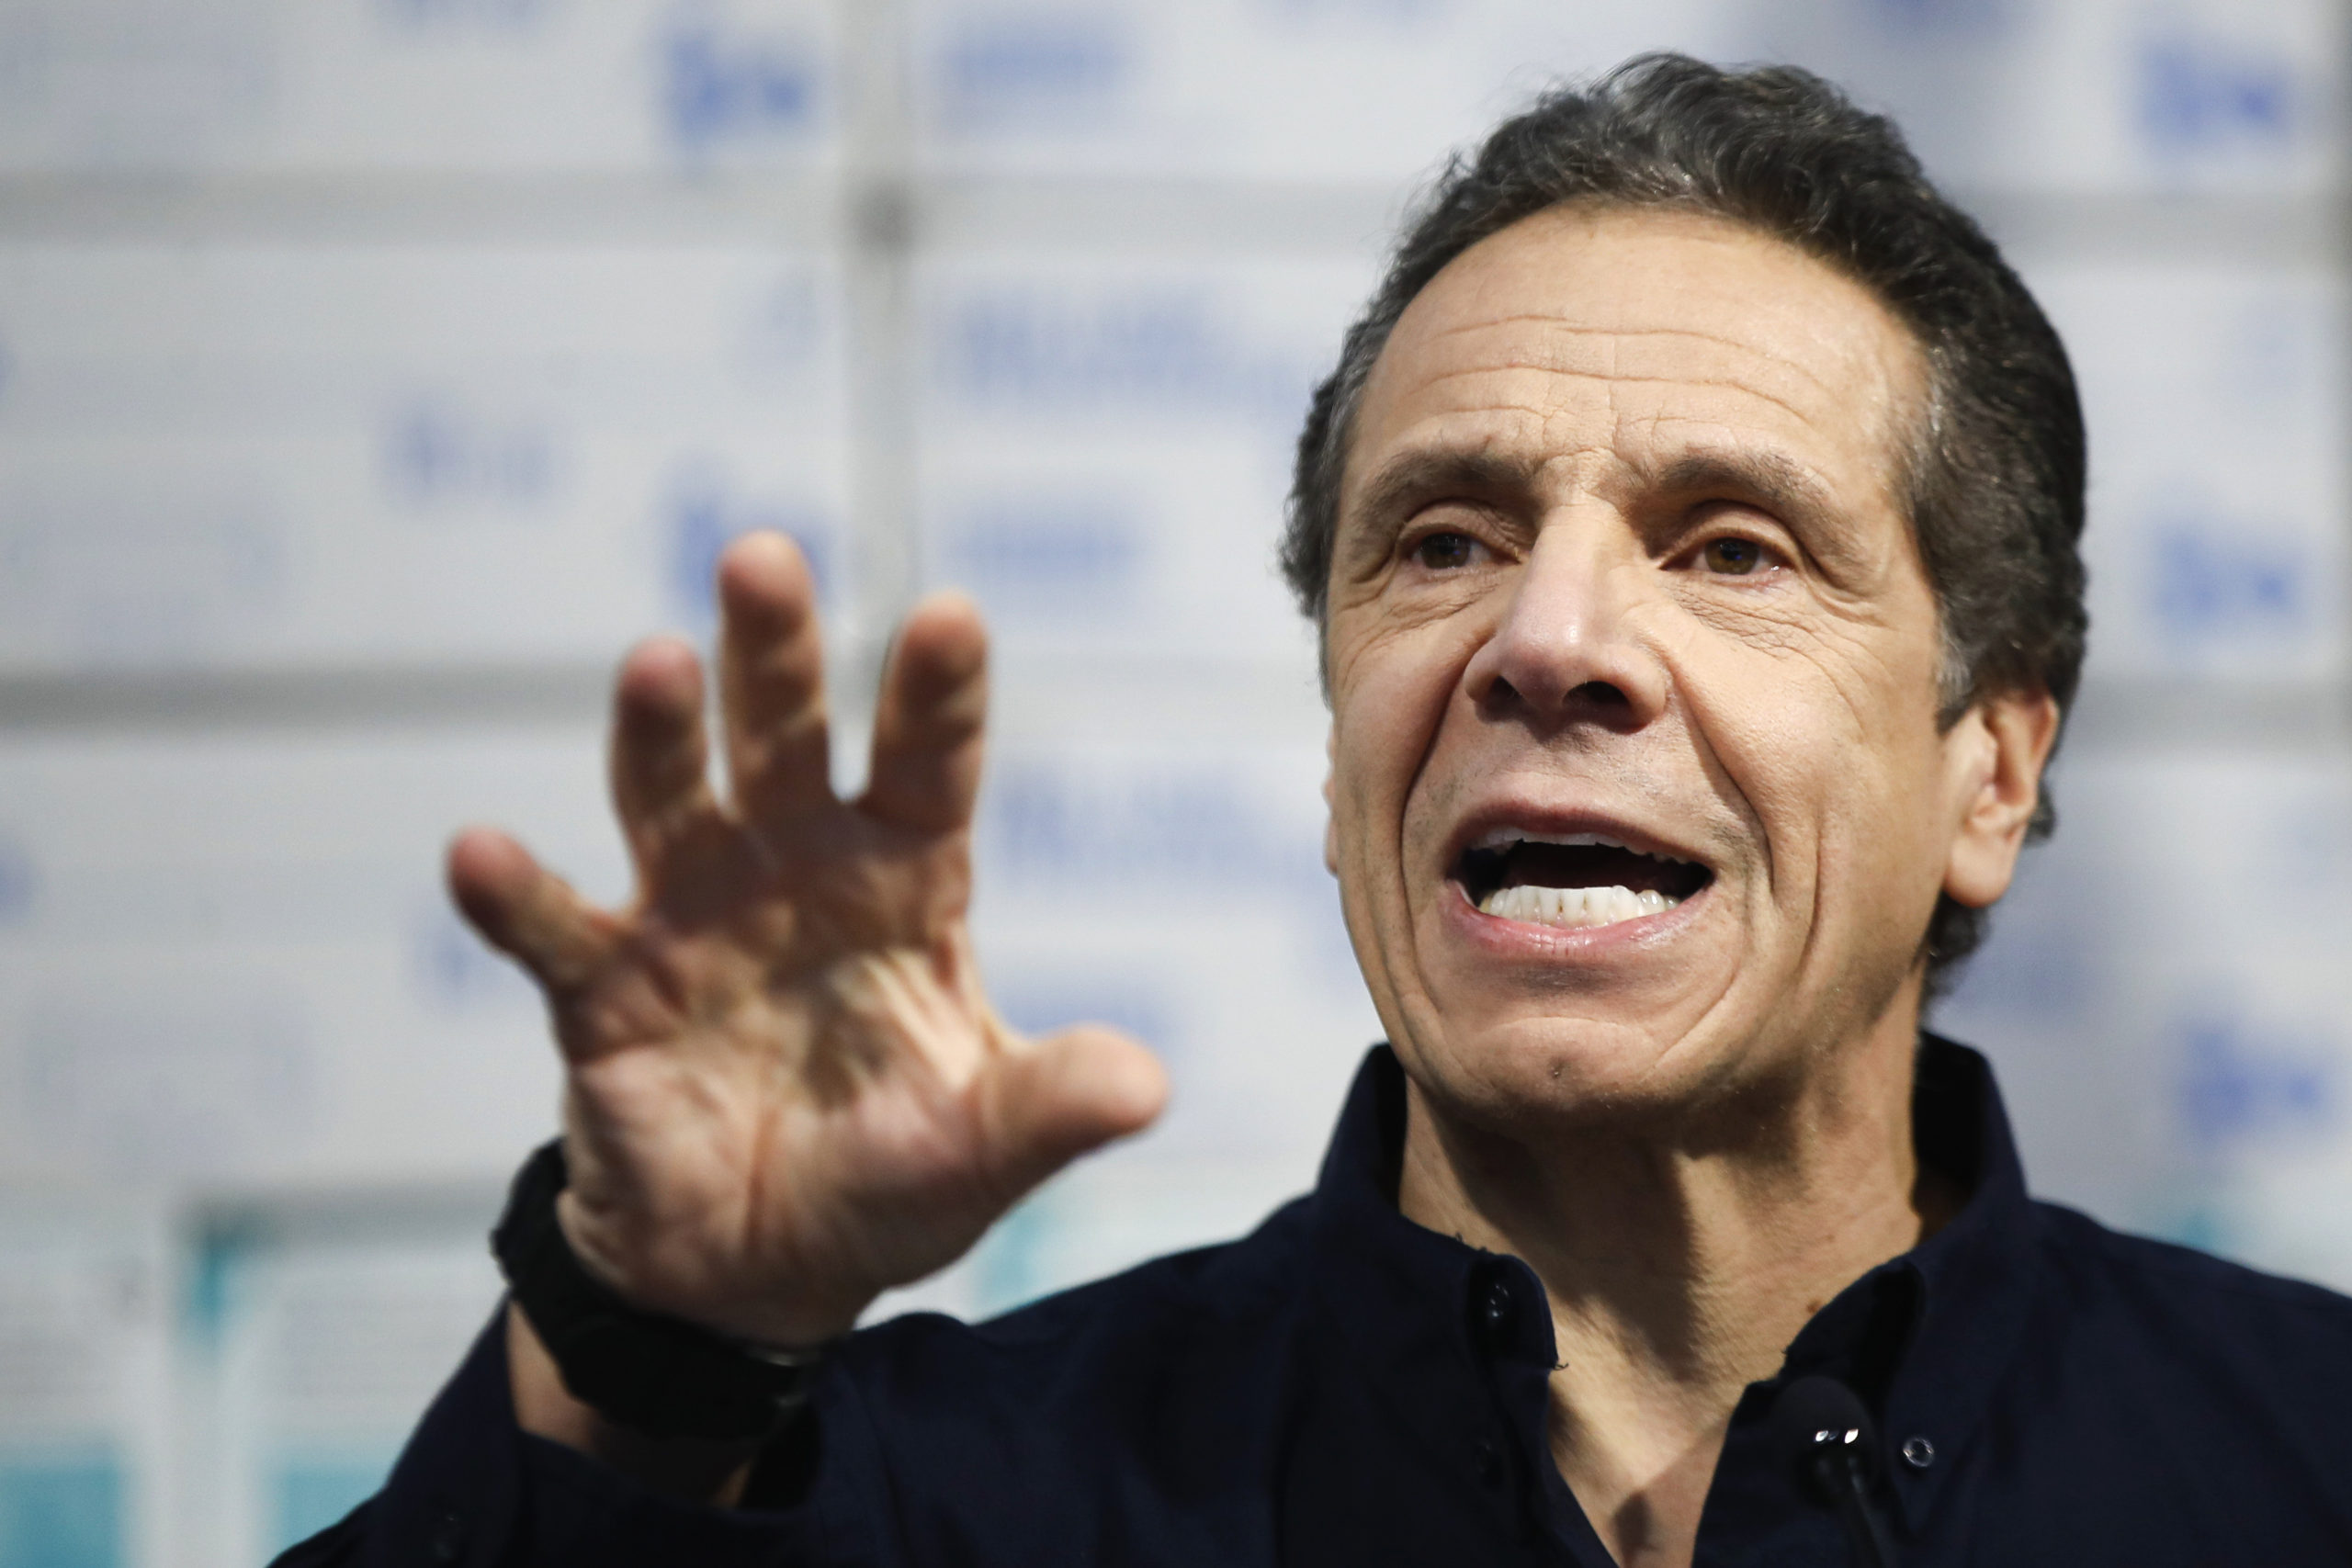 """Cuomo Tries To Save His Skin Once Again, Blames """"Toxic Political Environment"""" For NY Nursing Home Deaths"""